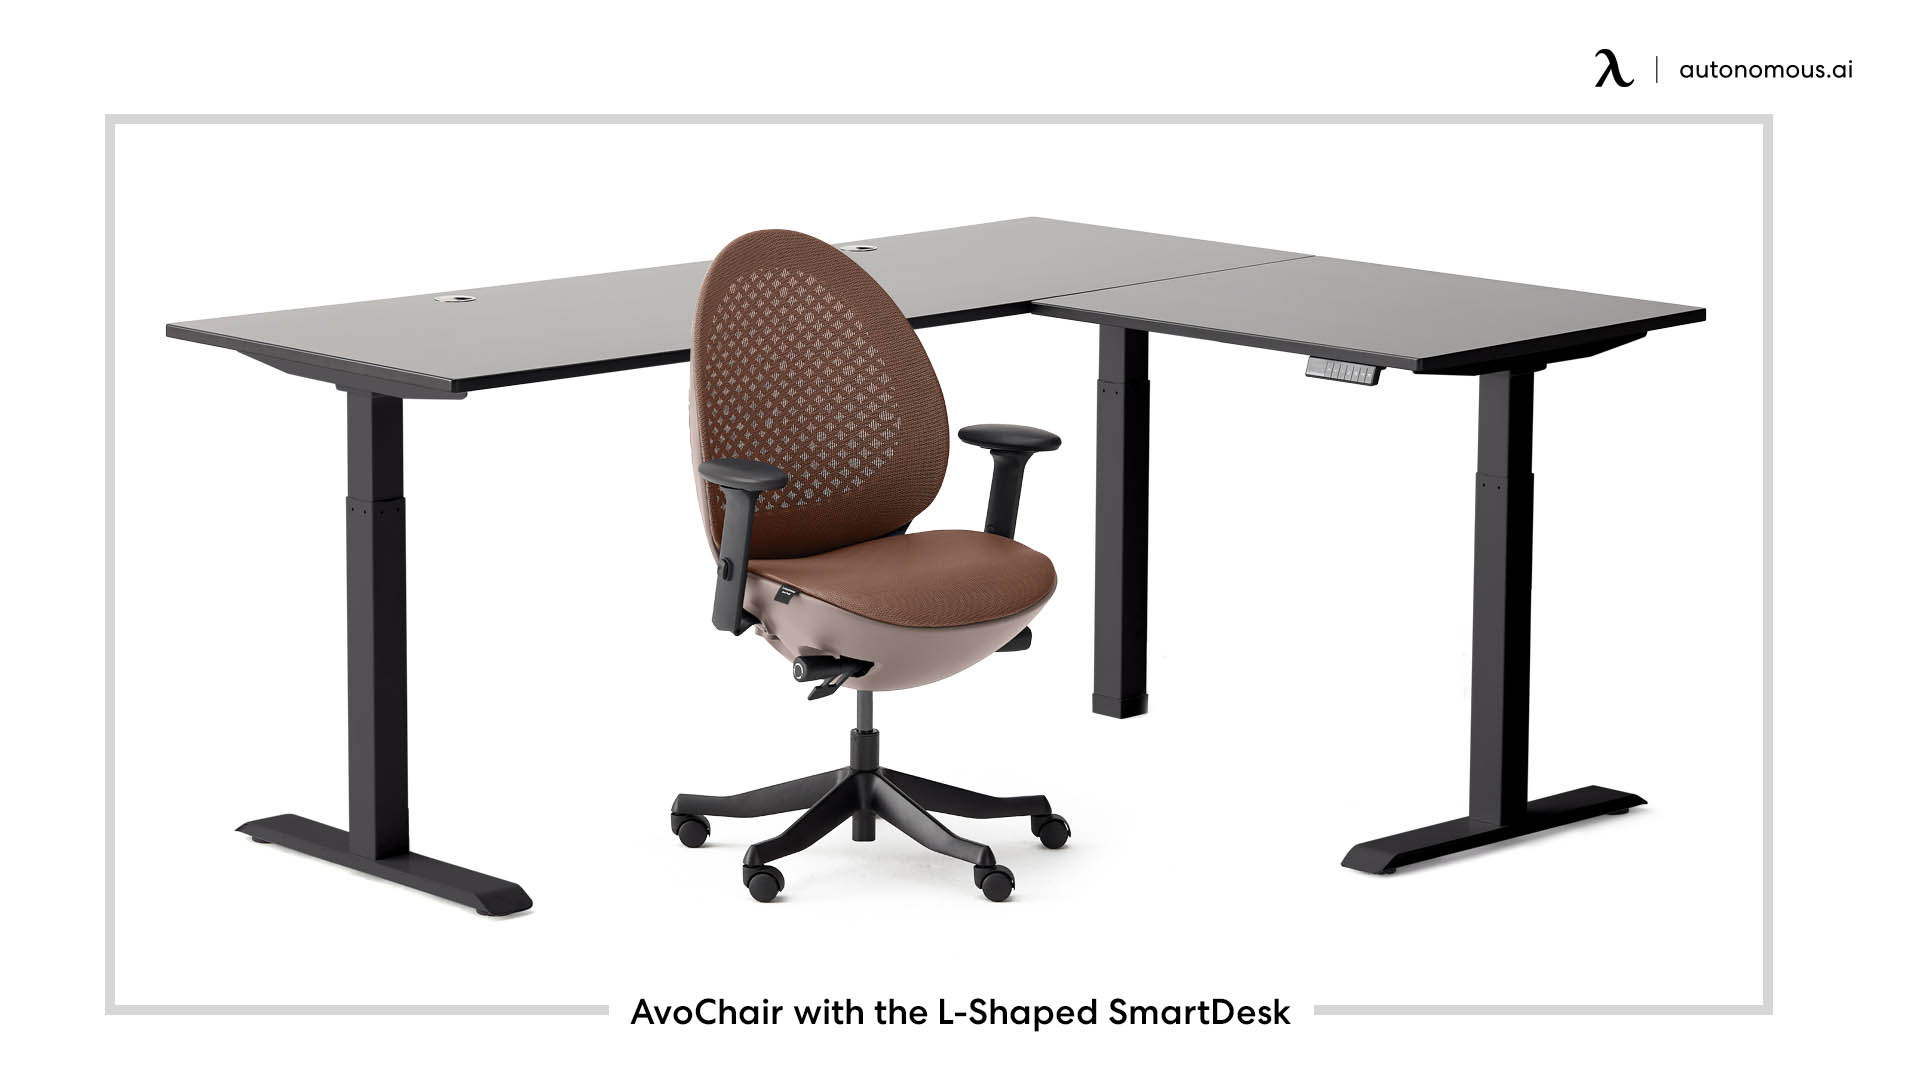 AvoChair with the L-Shaped SmartDesk